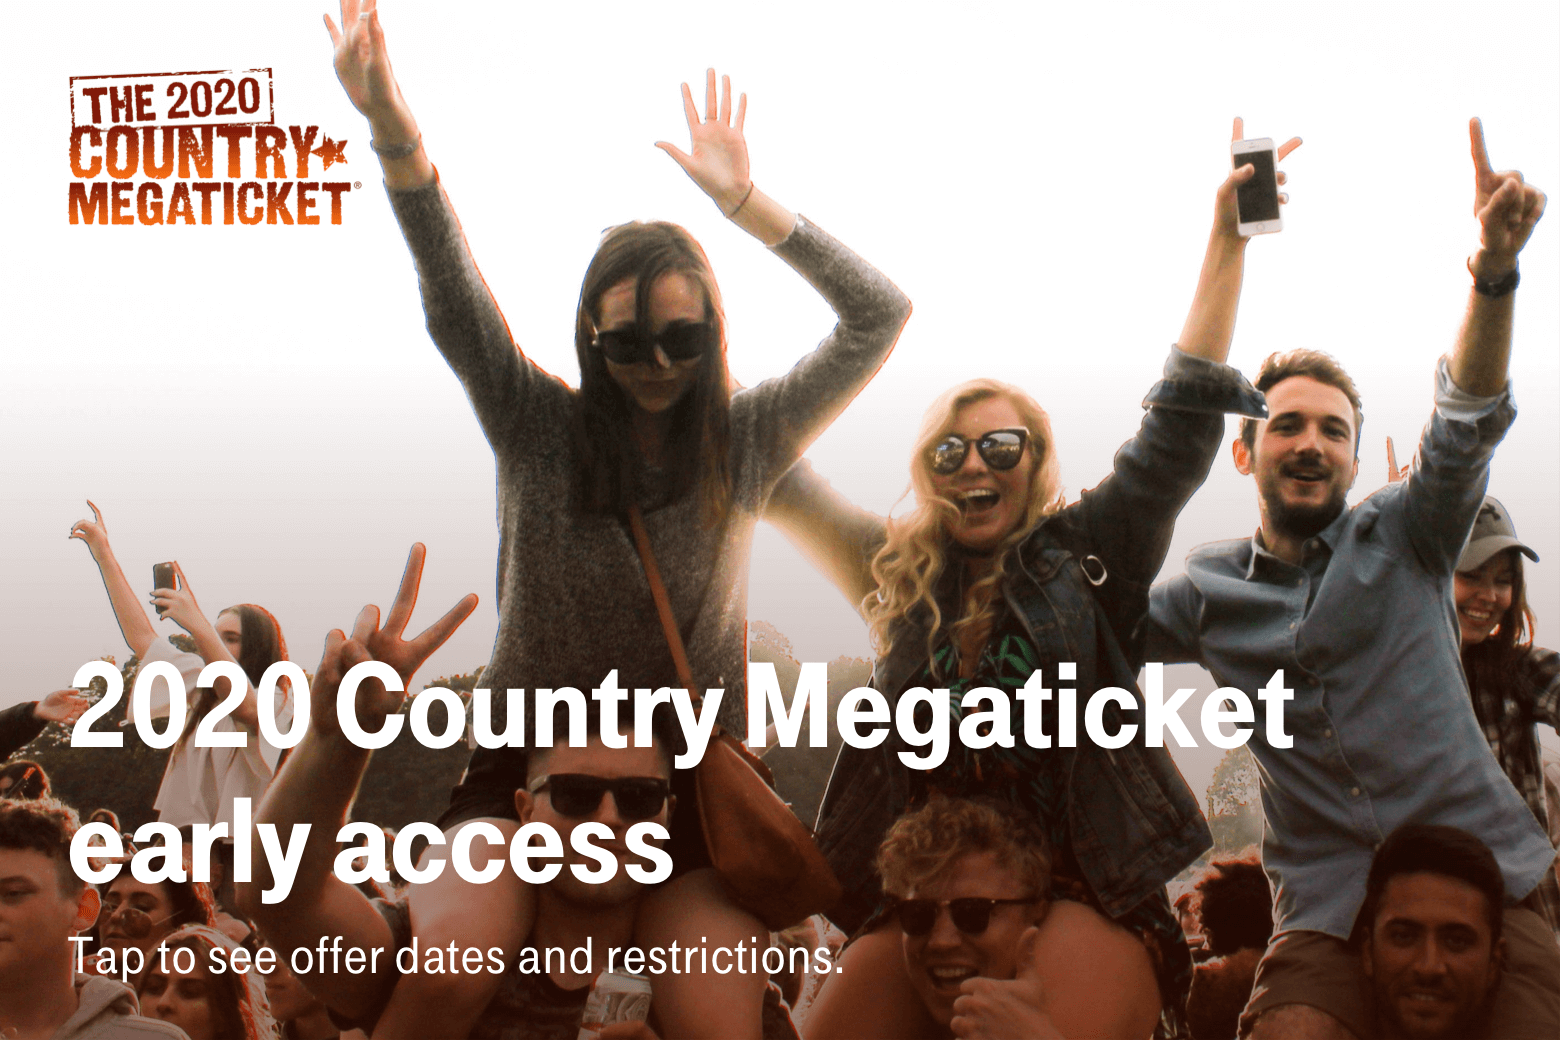 The 2020 Country Megaticket. 2020 Country Megaticket early access. Tap to see offer dates and restrictions